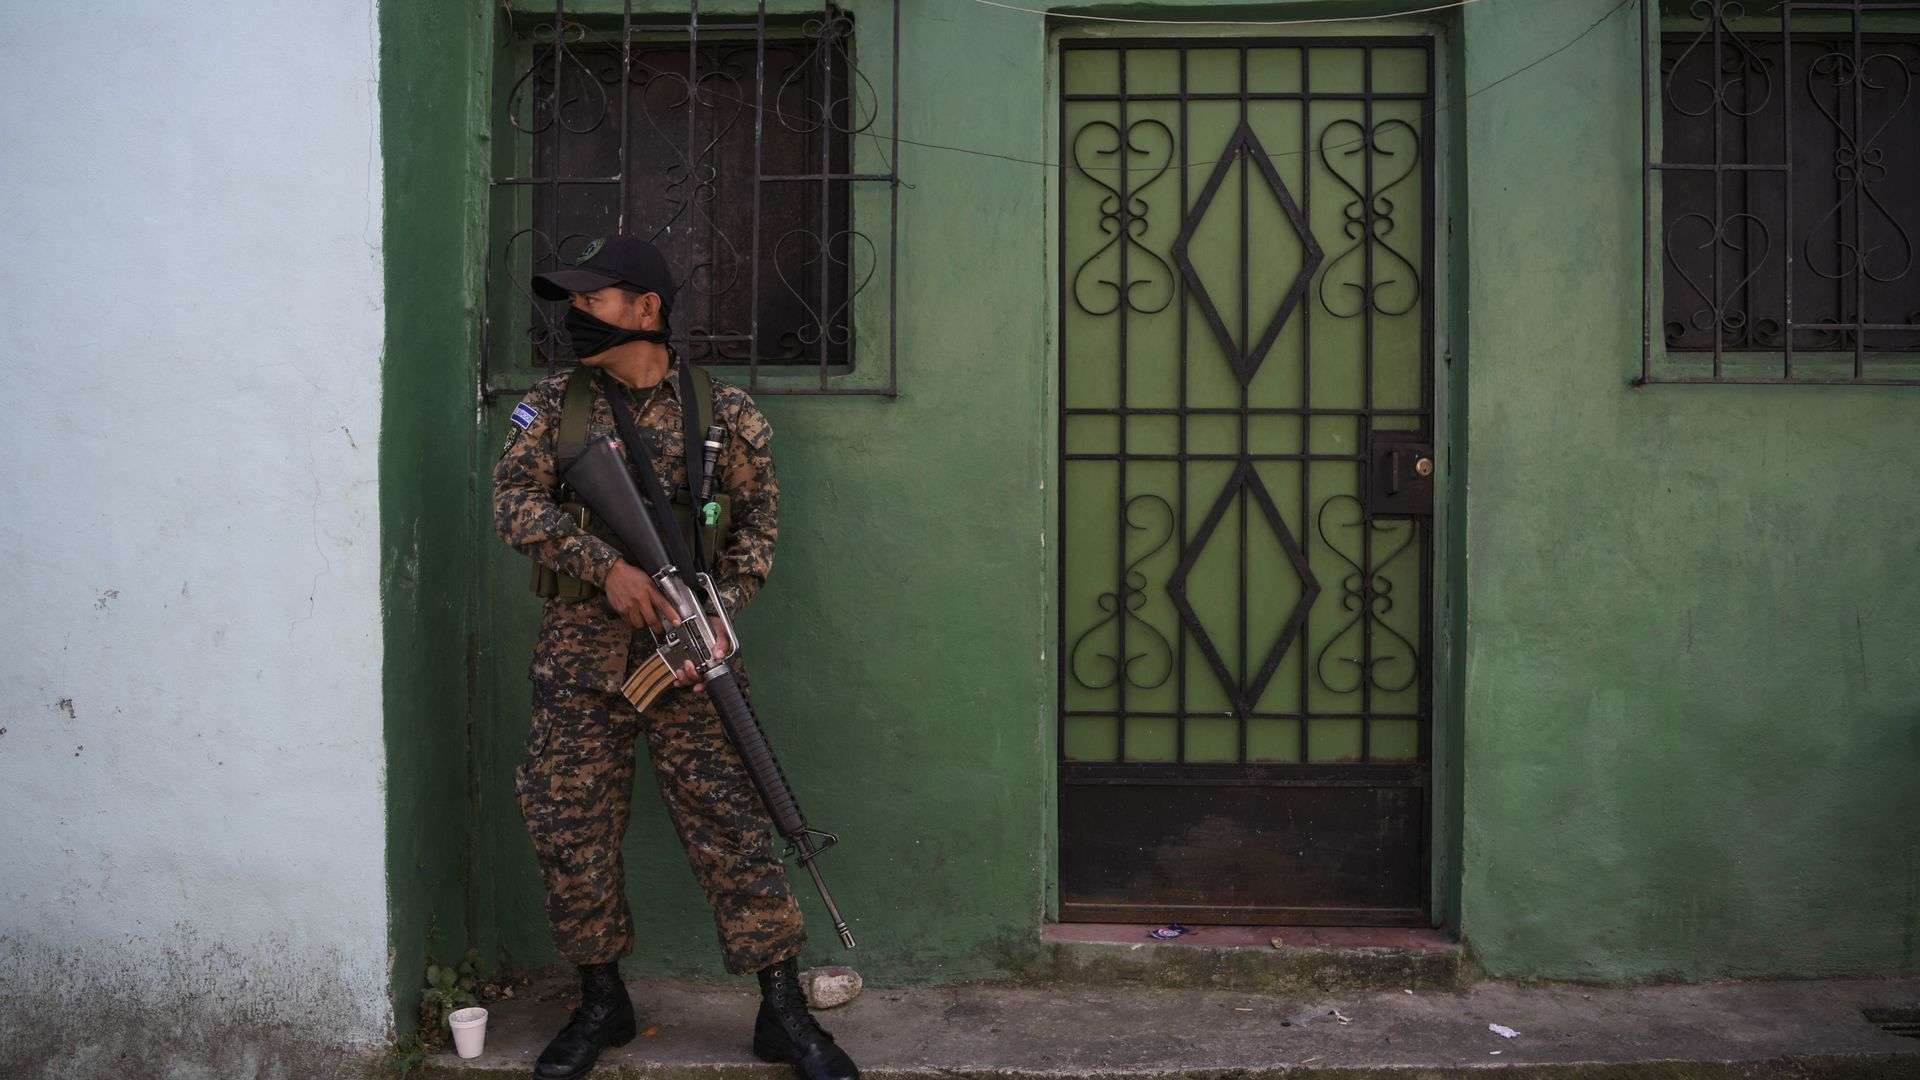 In this image, a Salvadoran army soldier patrols in a neighborhood dominated by the MS-13 gang in San Salvador. The soldier stands against a green wall, carrying a rifle.